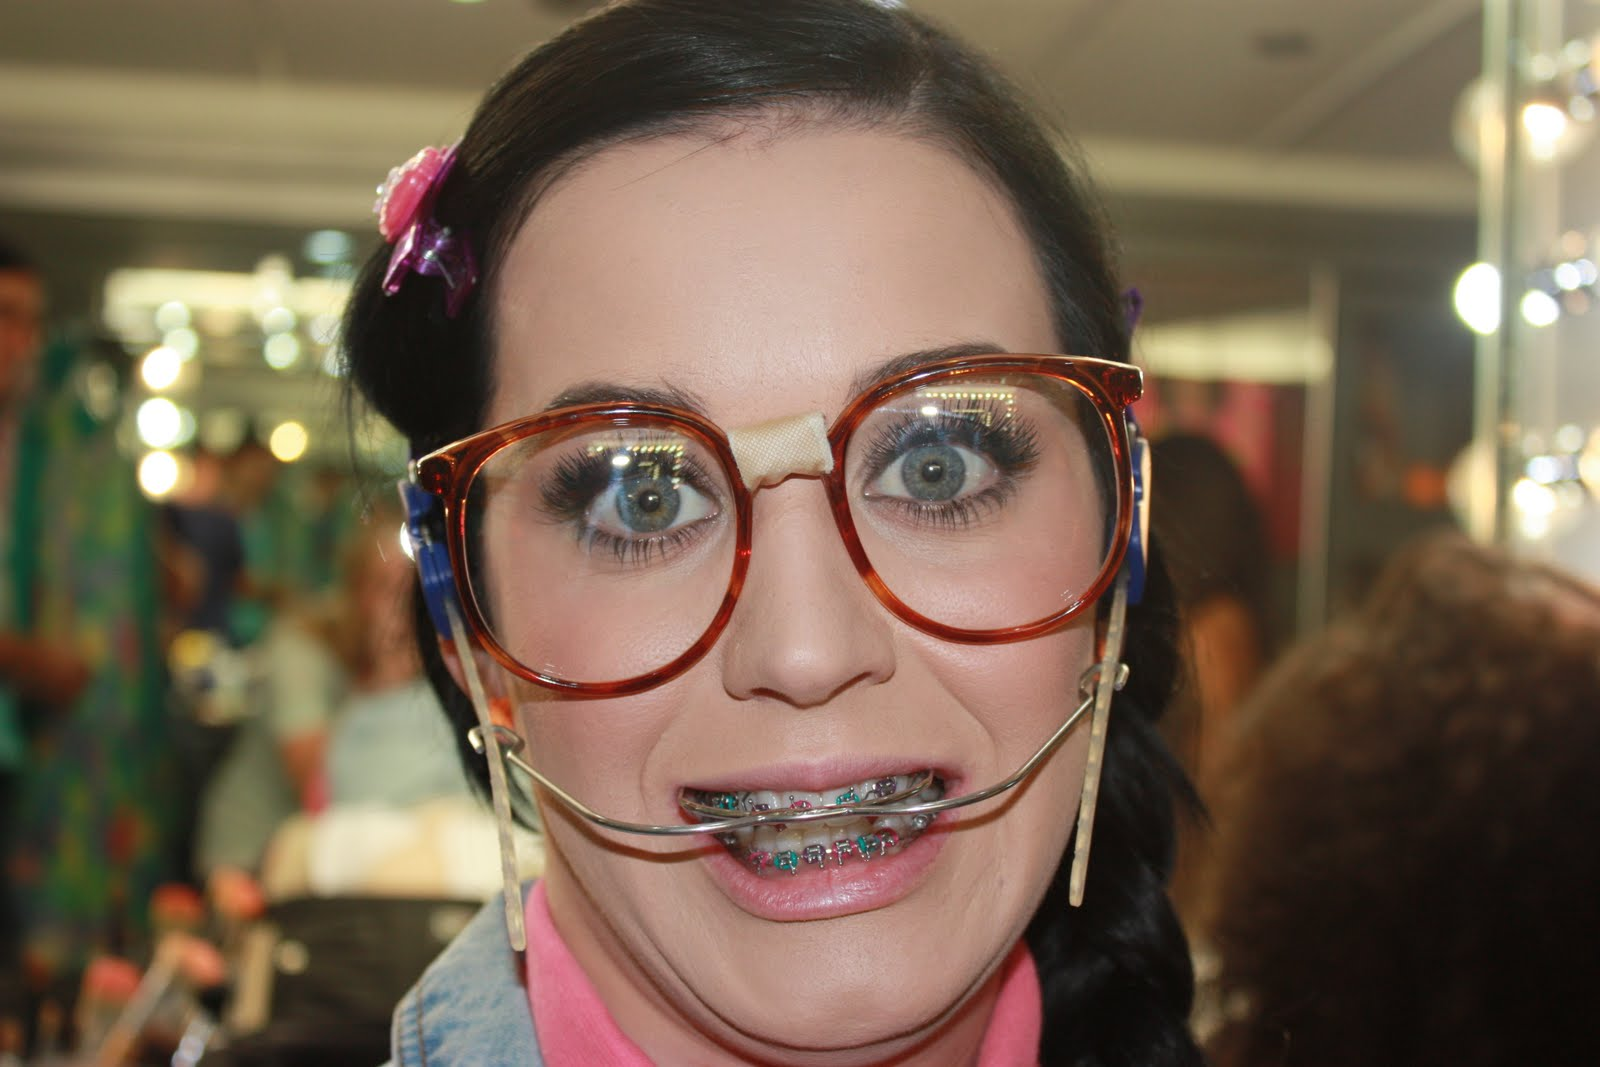 Katy Perry wearing braces and headgear